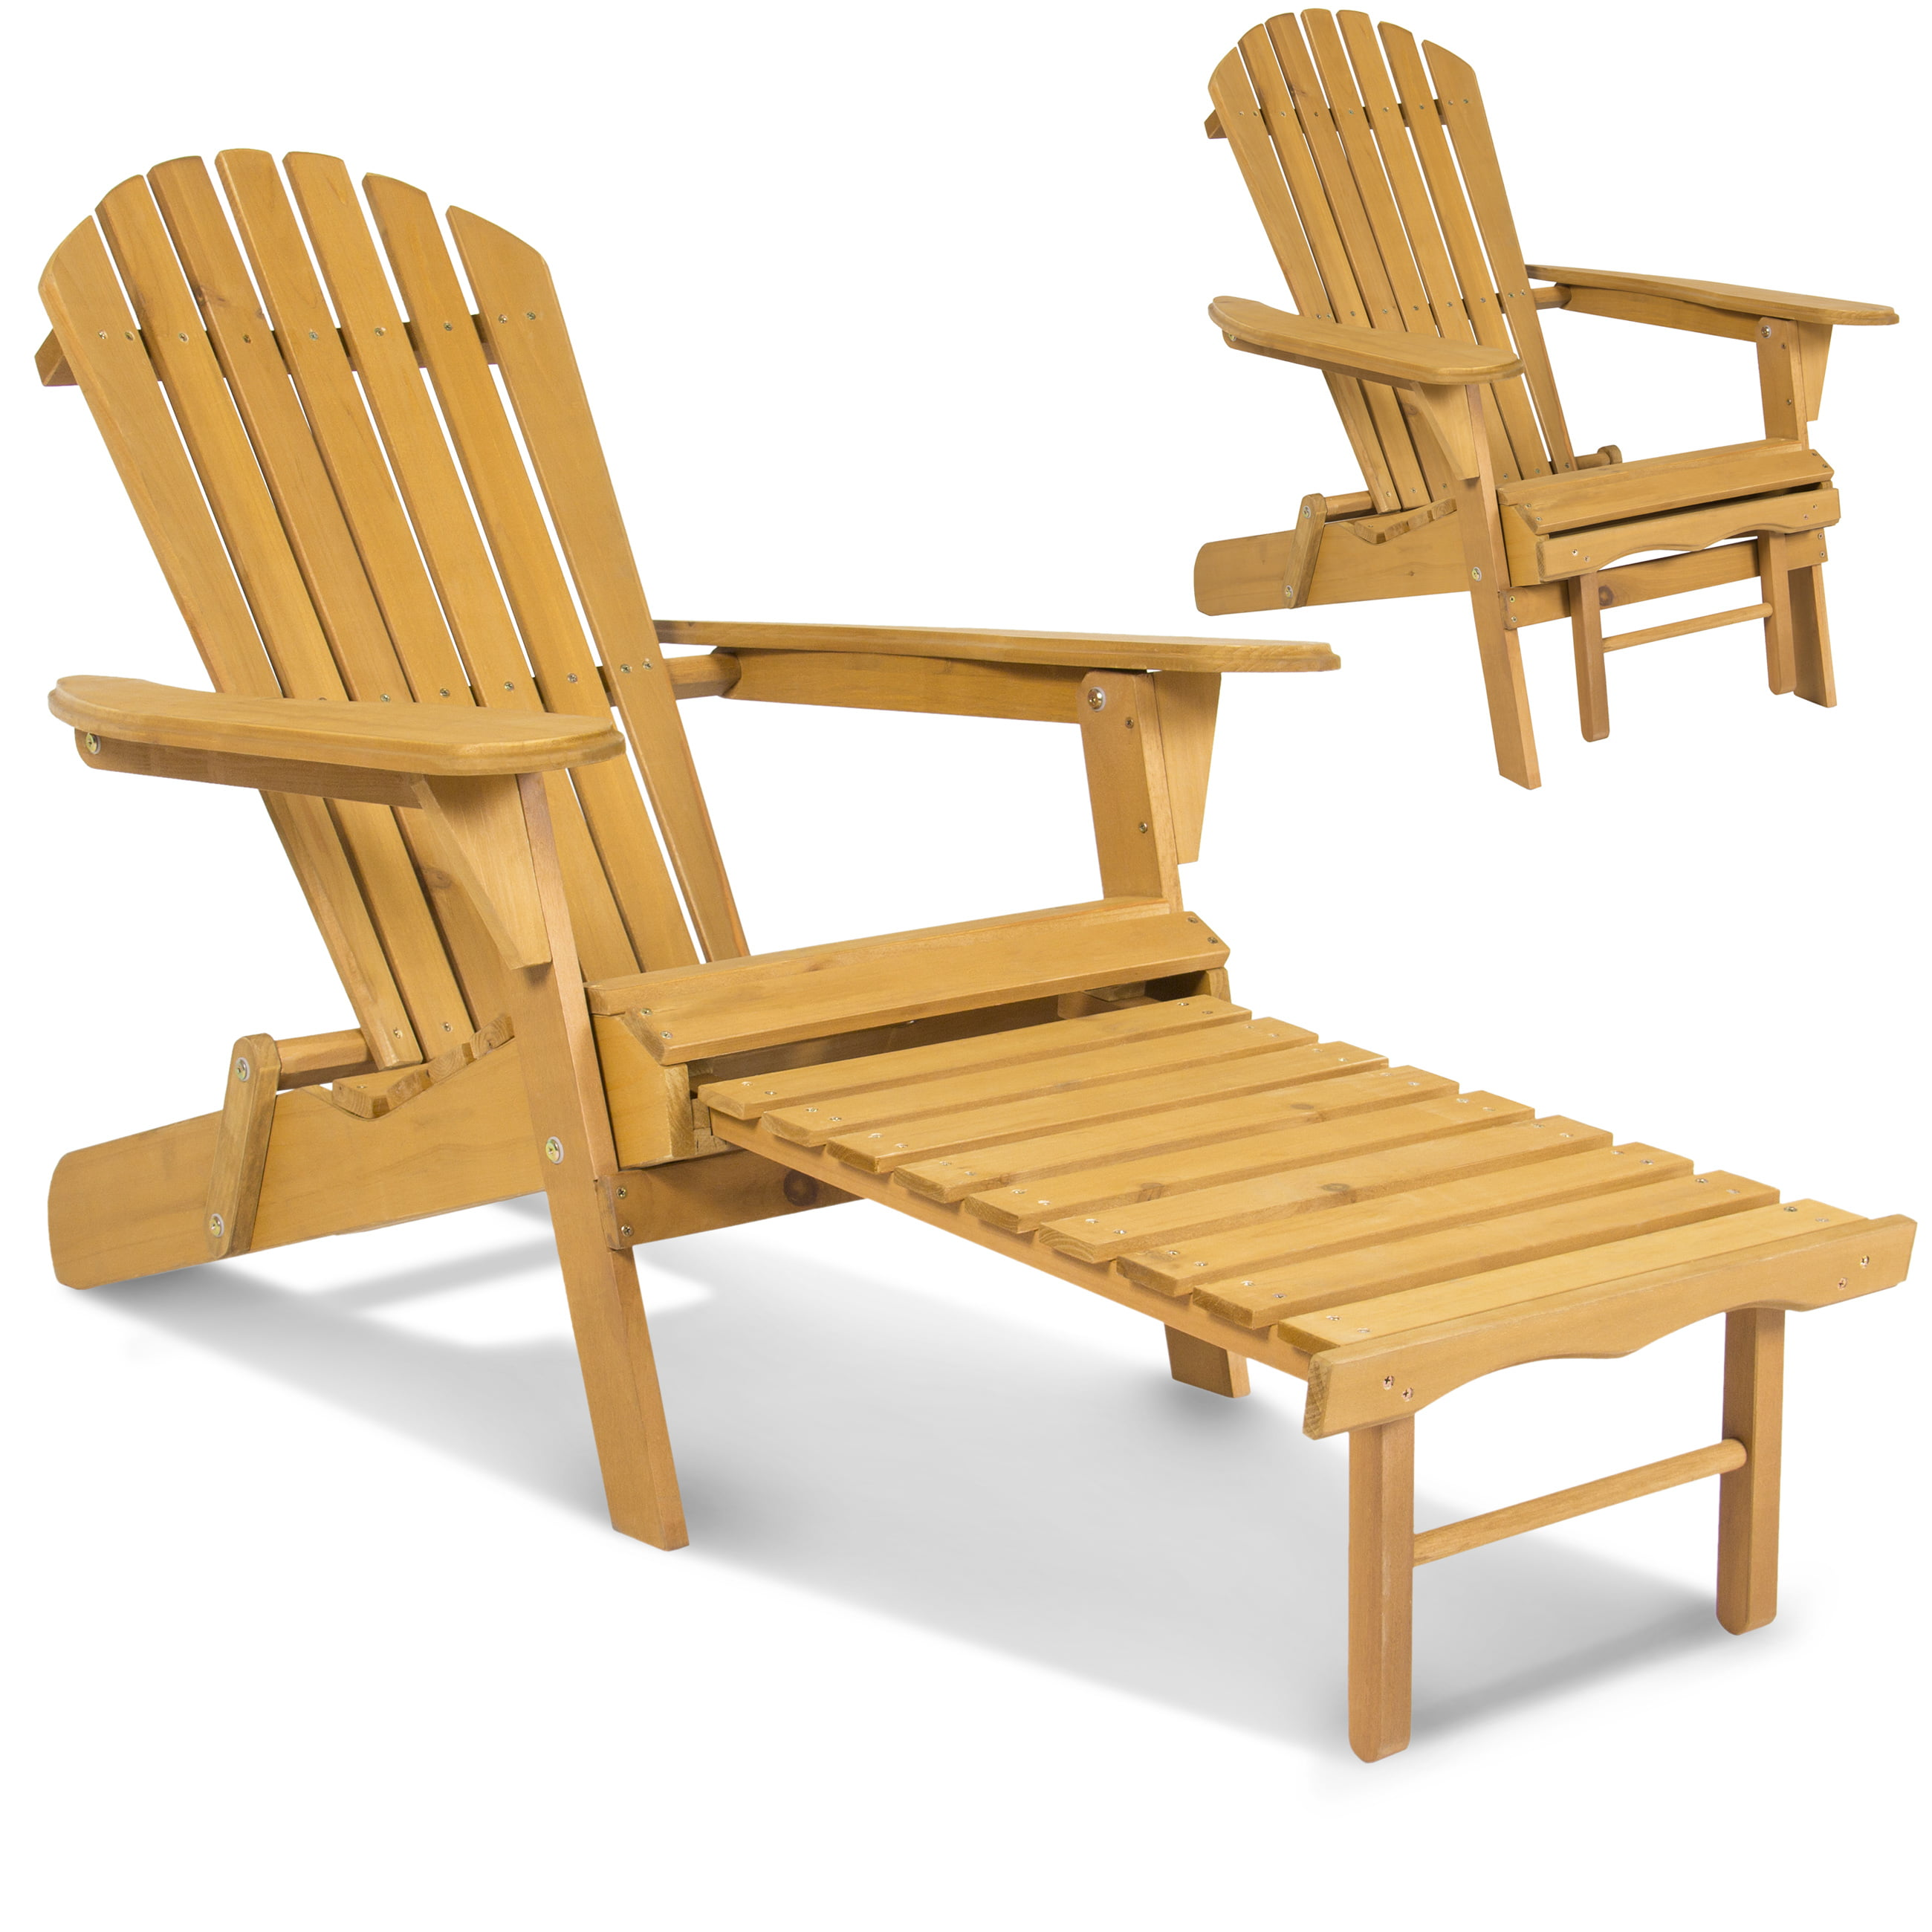 Outdoor Wood Adirondack Chair Foldable W Pull Out Ottoman Patio Deck Furniture Com